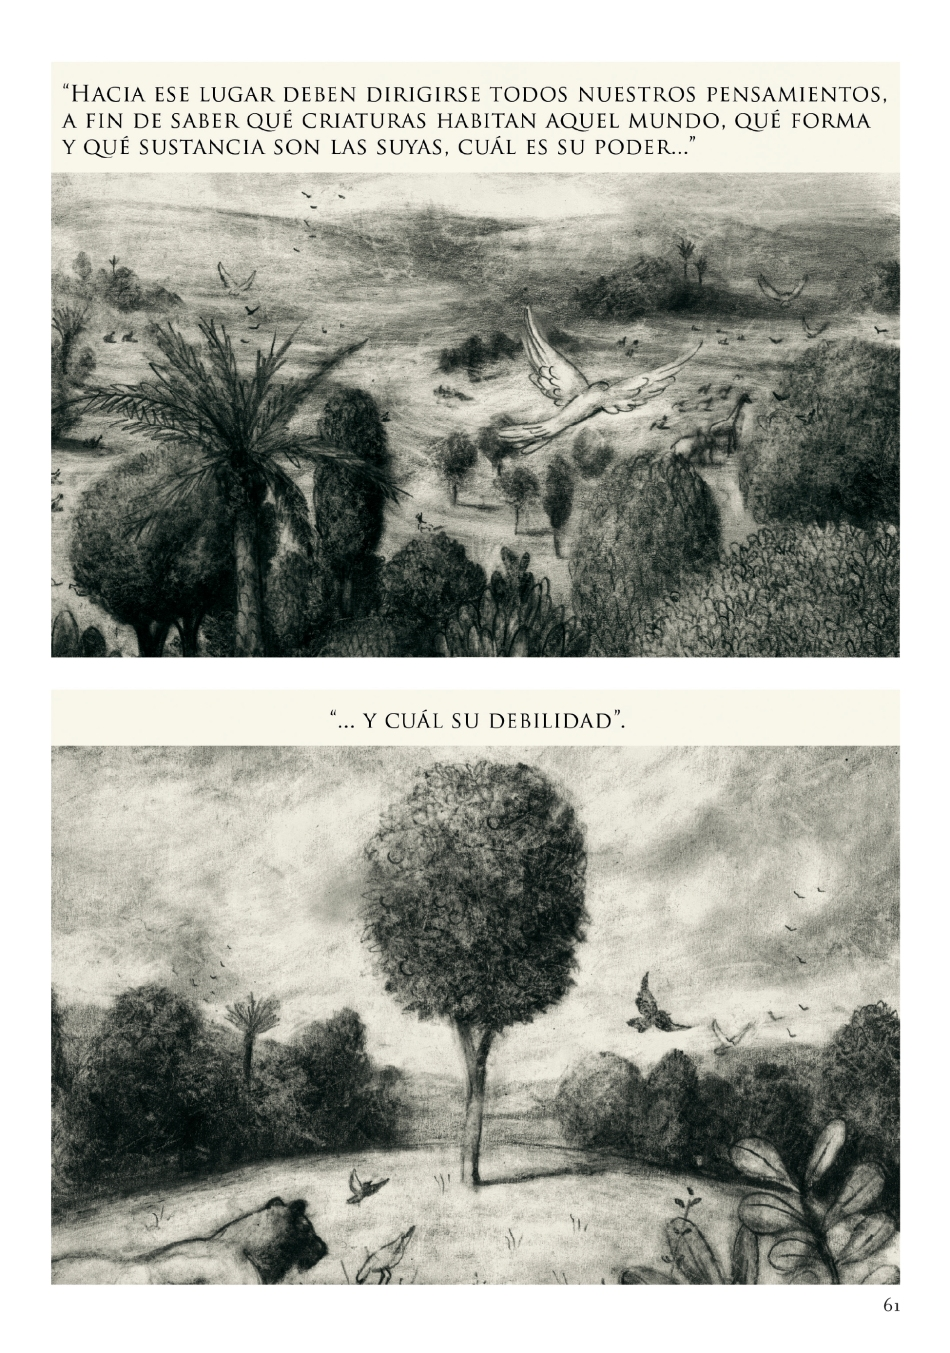 Pages from ParaisoPerdidoALTA-2